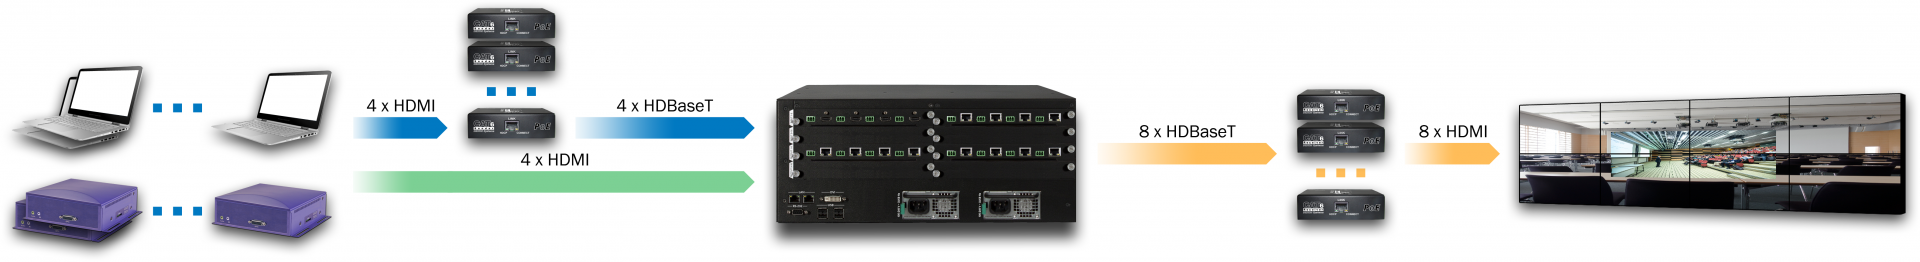 DXN5200-4U typical configuration